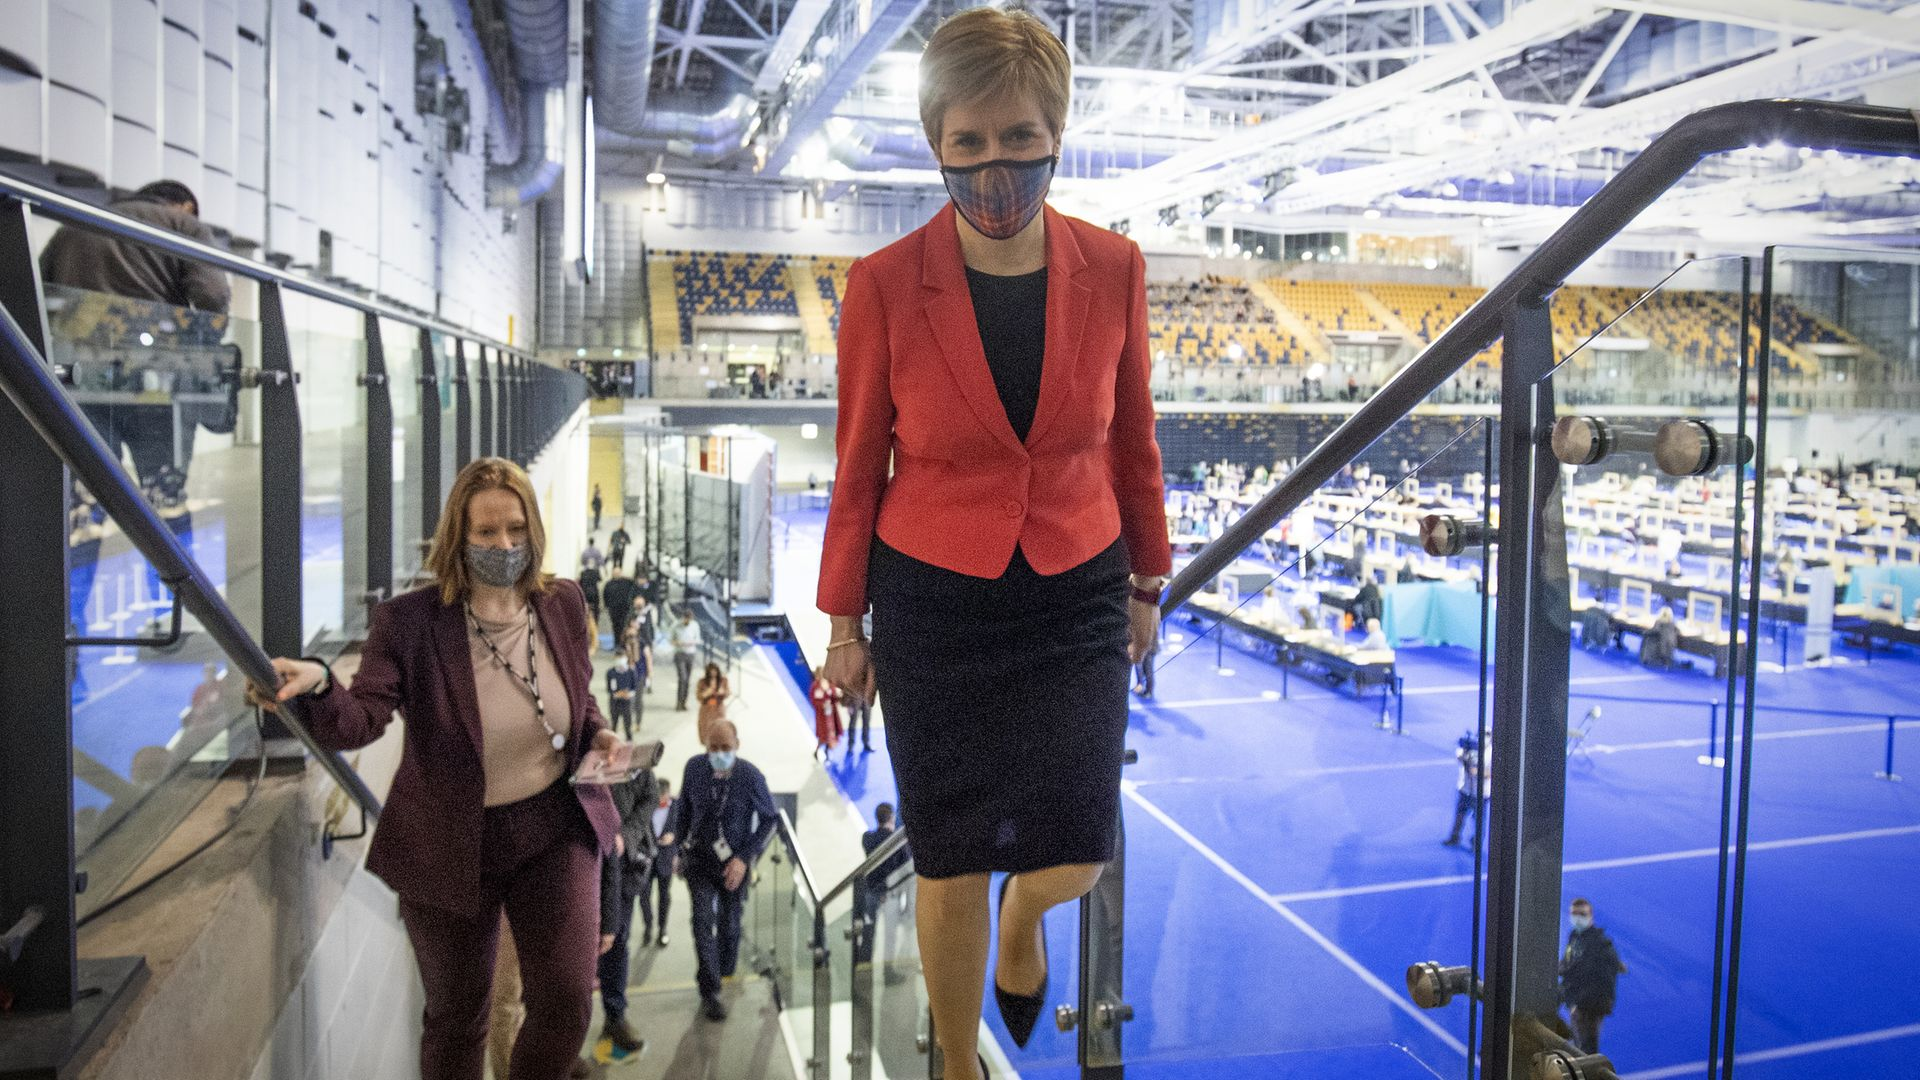 First minister and SNP party leader Nicola Sturgeon arrives at the count for the Scottish parliamentary elections at the Emirates Arena, Glasgow - Credit: PA